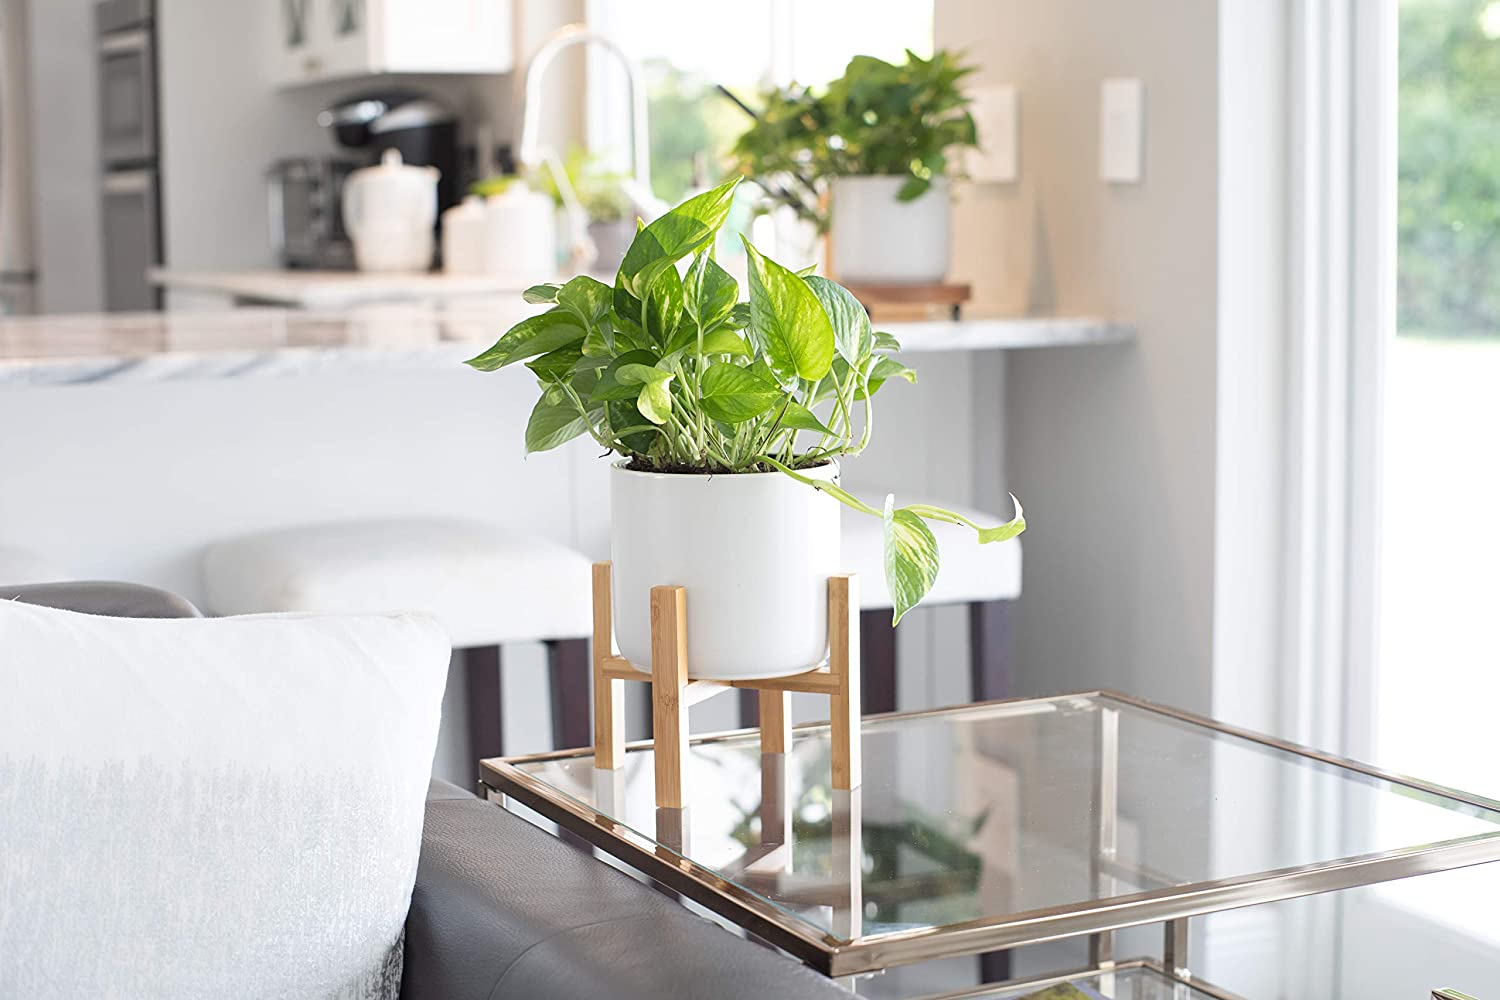 mid century planter with golden devils ivy pothos